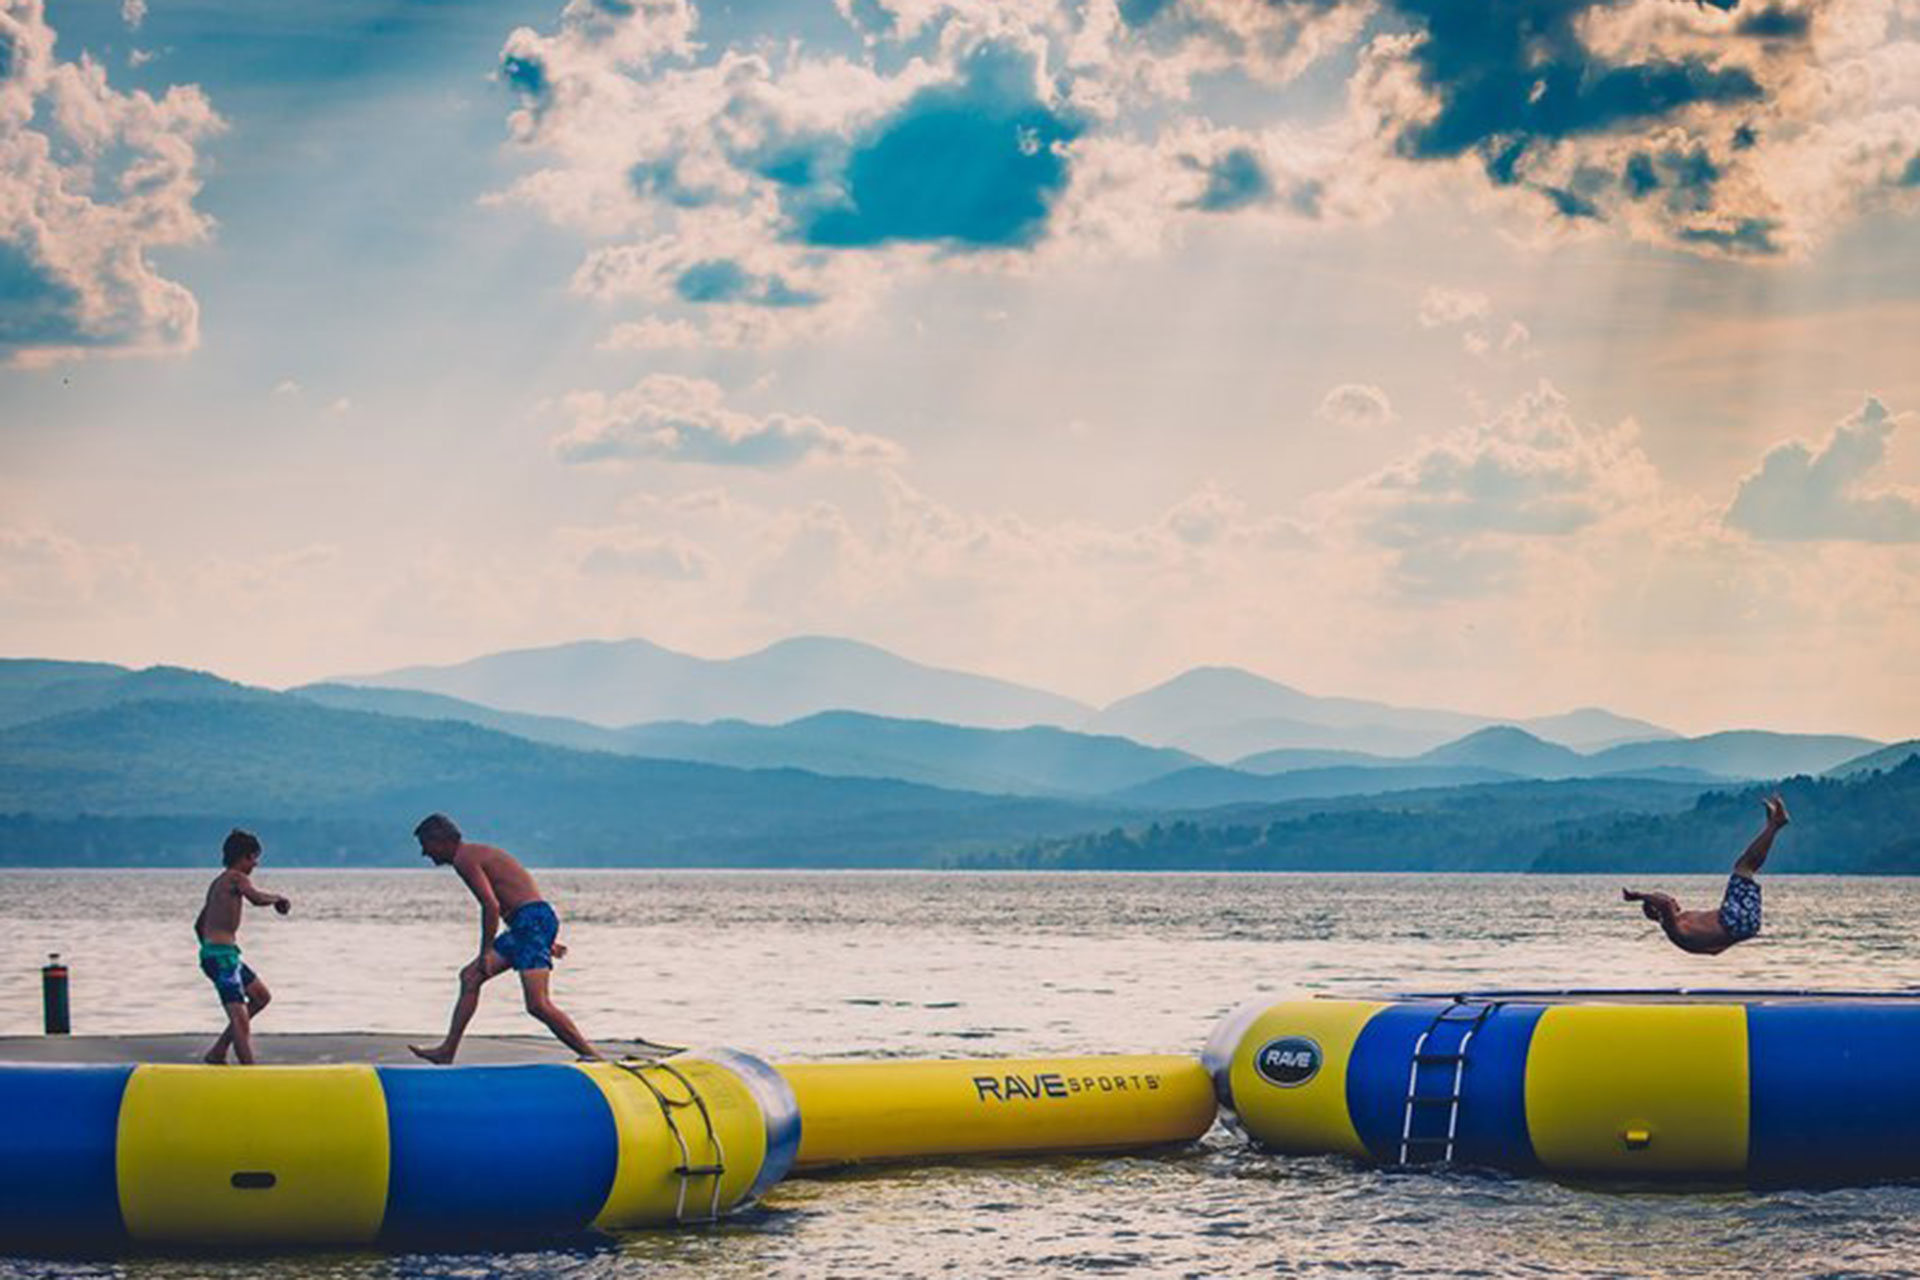 Kids Playing on Water Trampolines at Basin Harbor Resort in Vermont; Courtesy of Basin Harbor